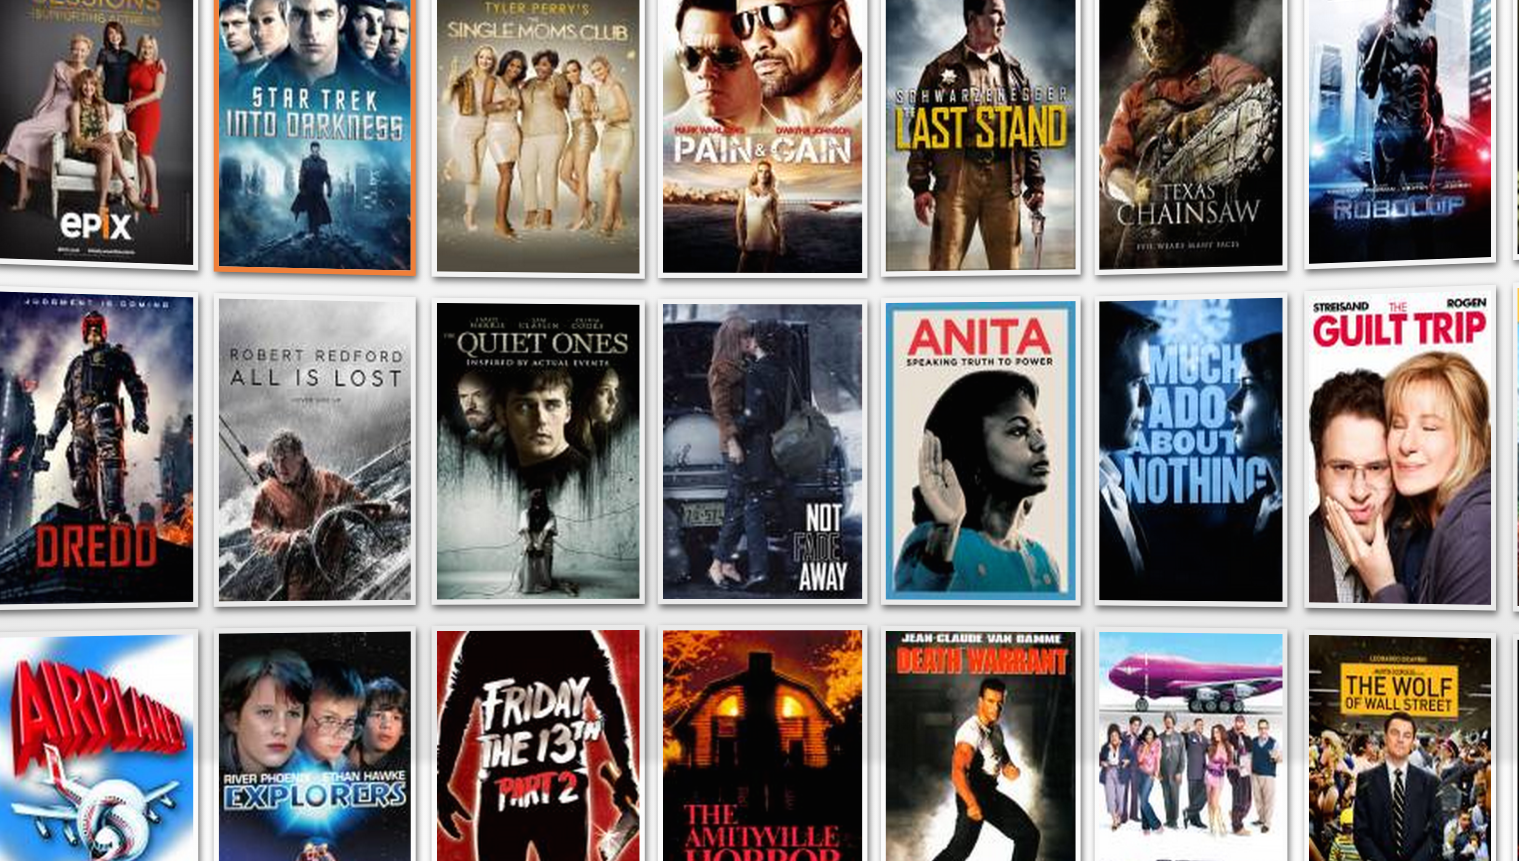 Sling TV Chooses Epix For Its First Premium Movie Package ...